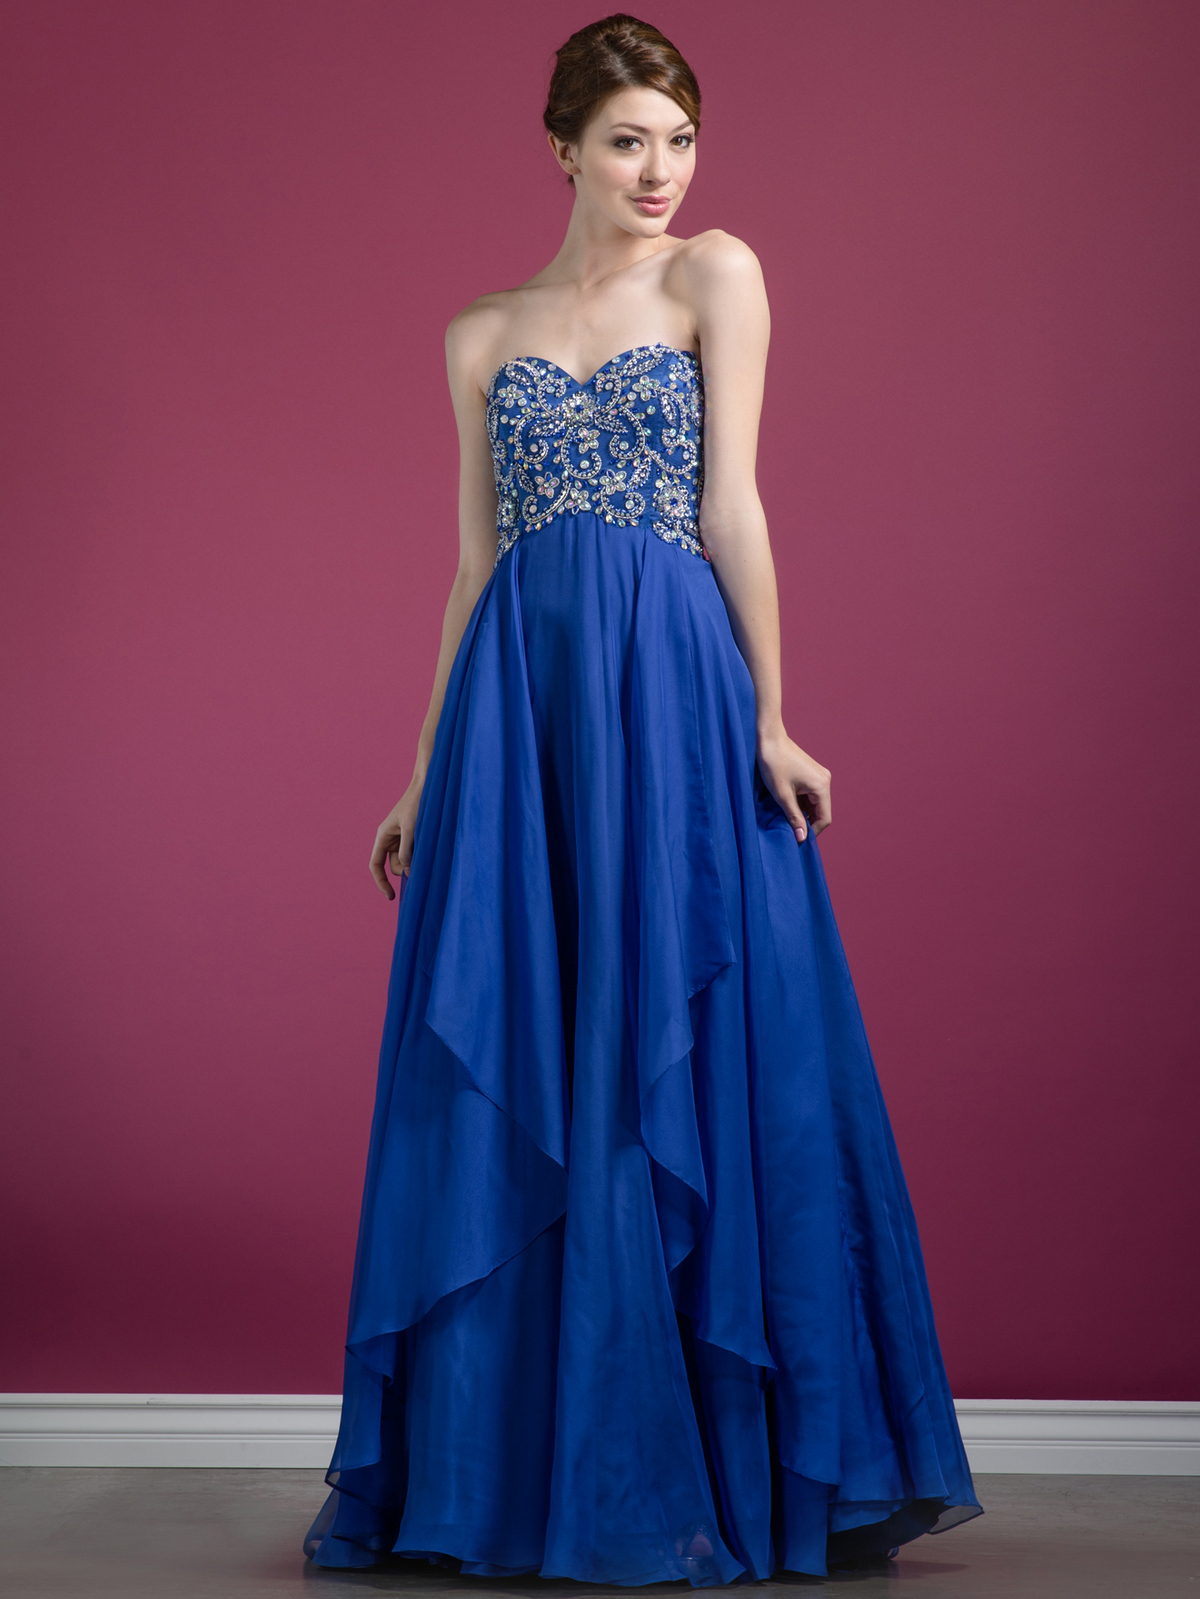 Stone Sweetheart Prom Dress | Sung Boutique L.A.